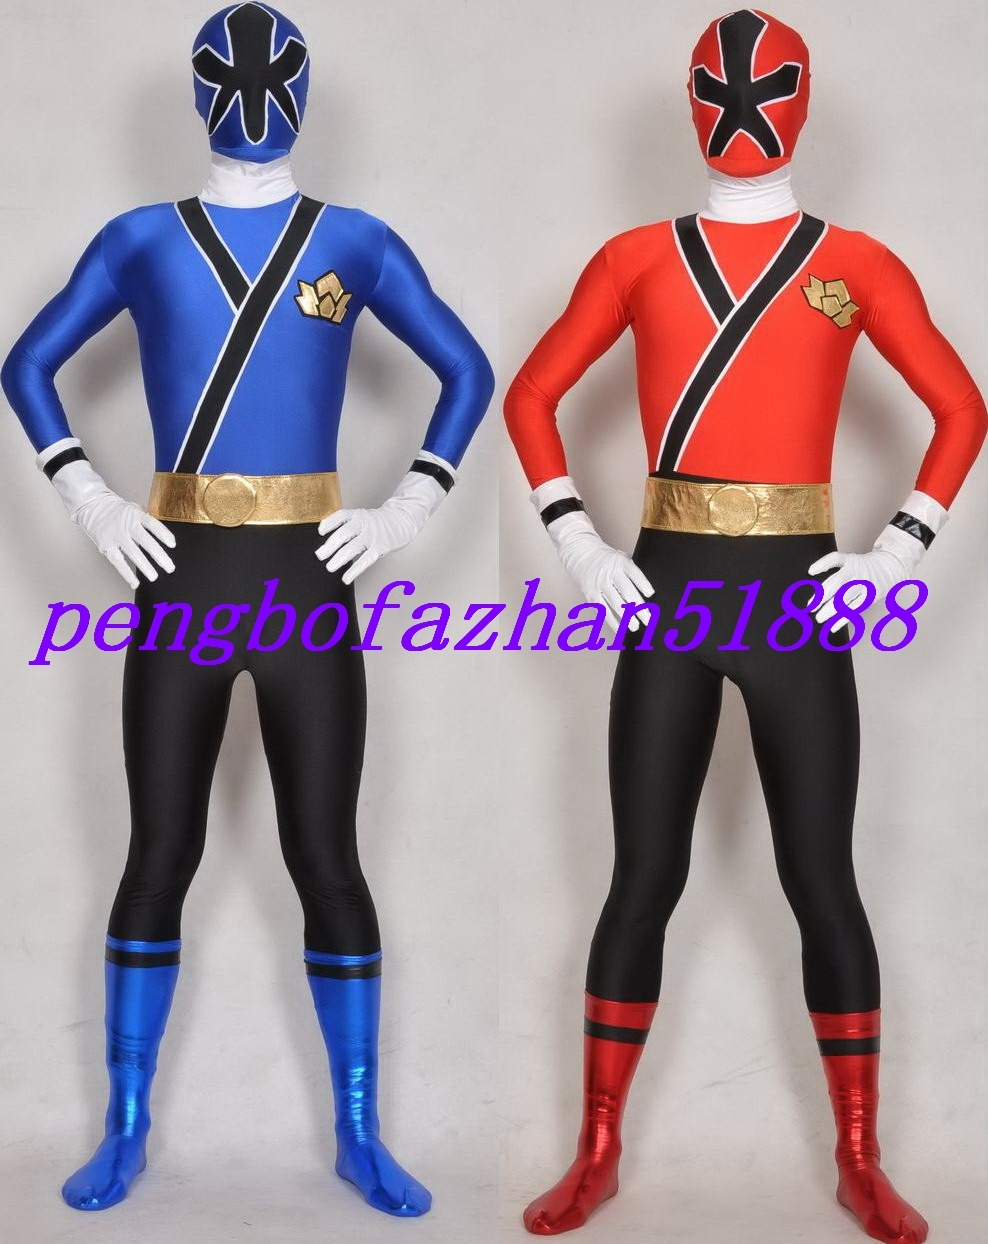 Primary image for 2 COLOR FANTASTIC POWER RANGER SUIT CATSUIT COSTUMES HALLOWEEN COSPLAY SUIT S579